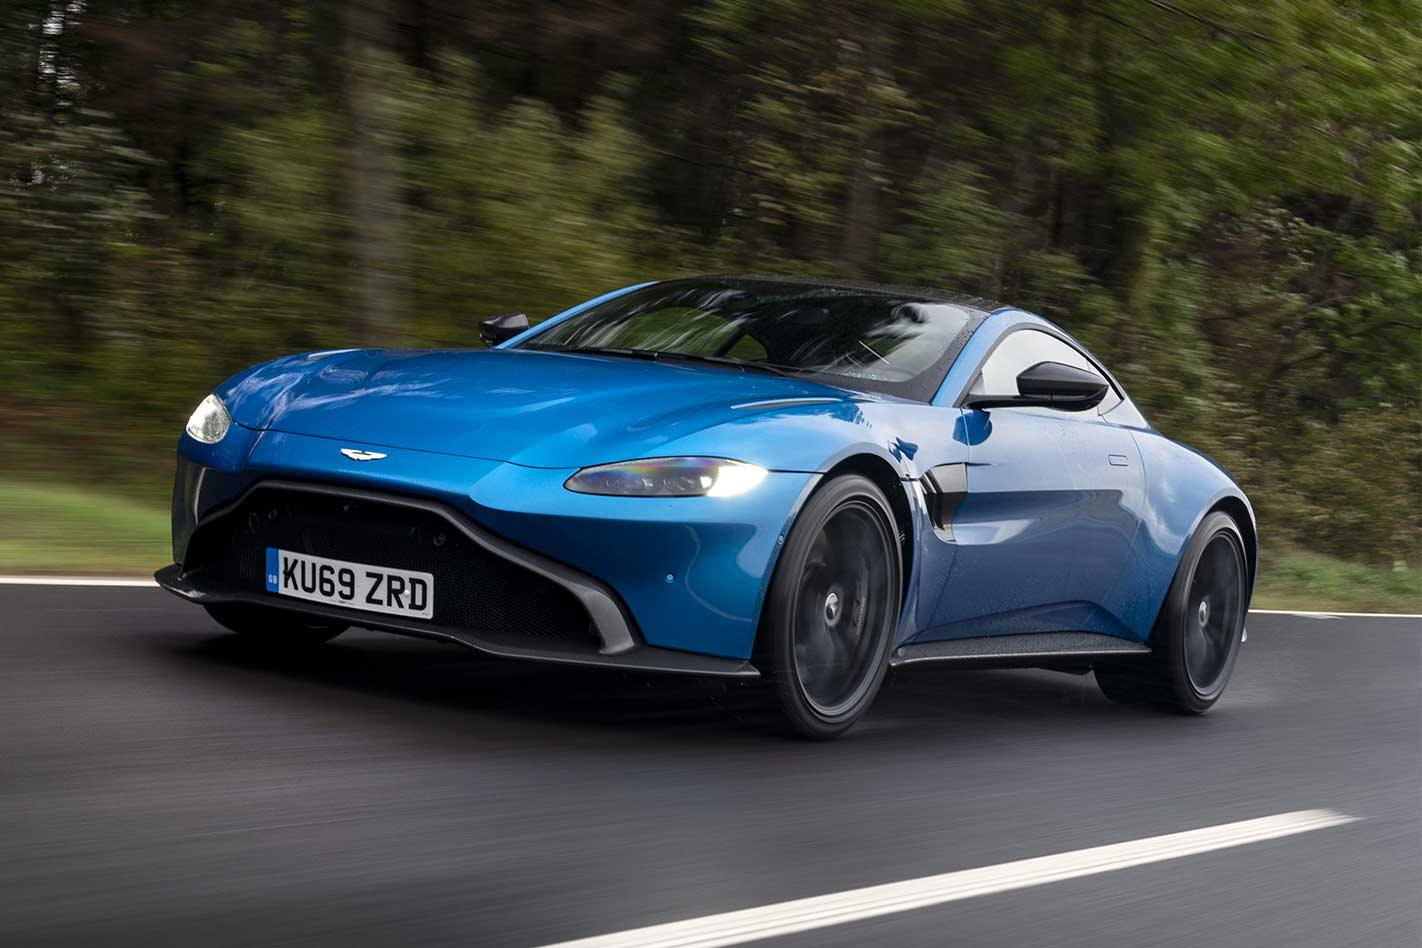 2019 Aston Martin Vantage manual review